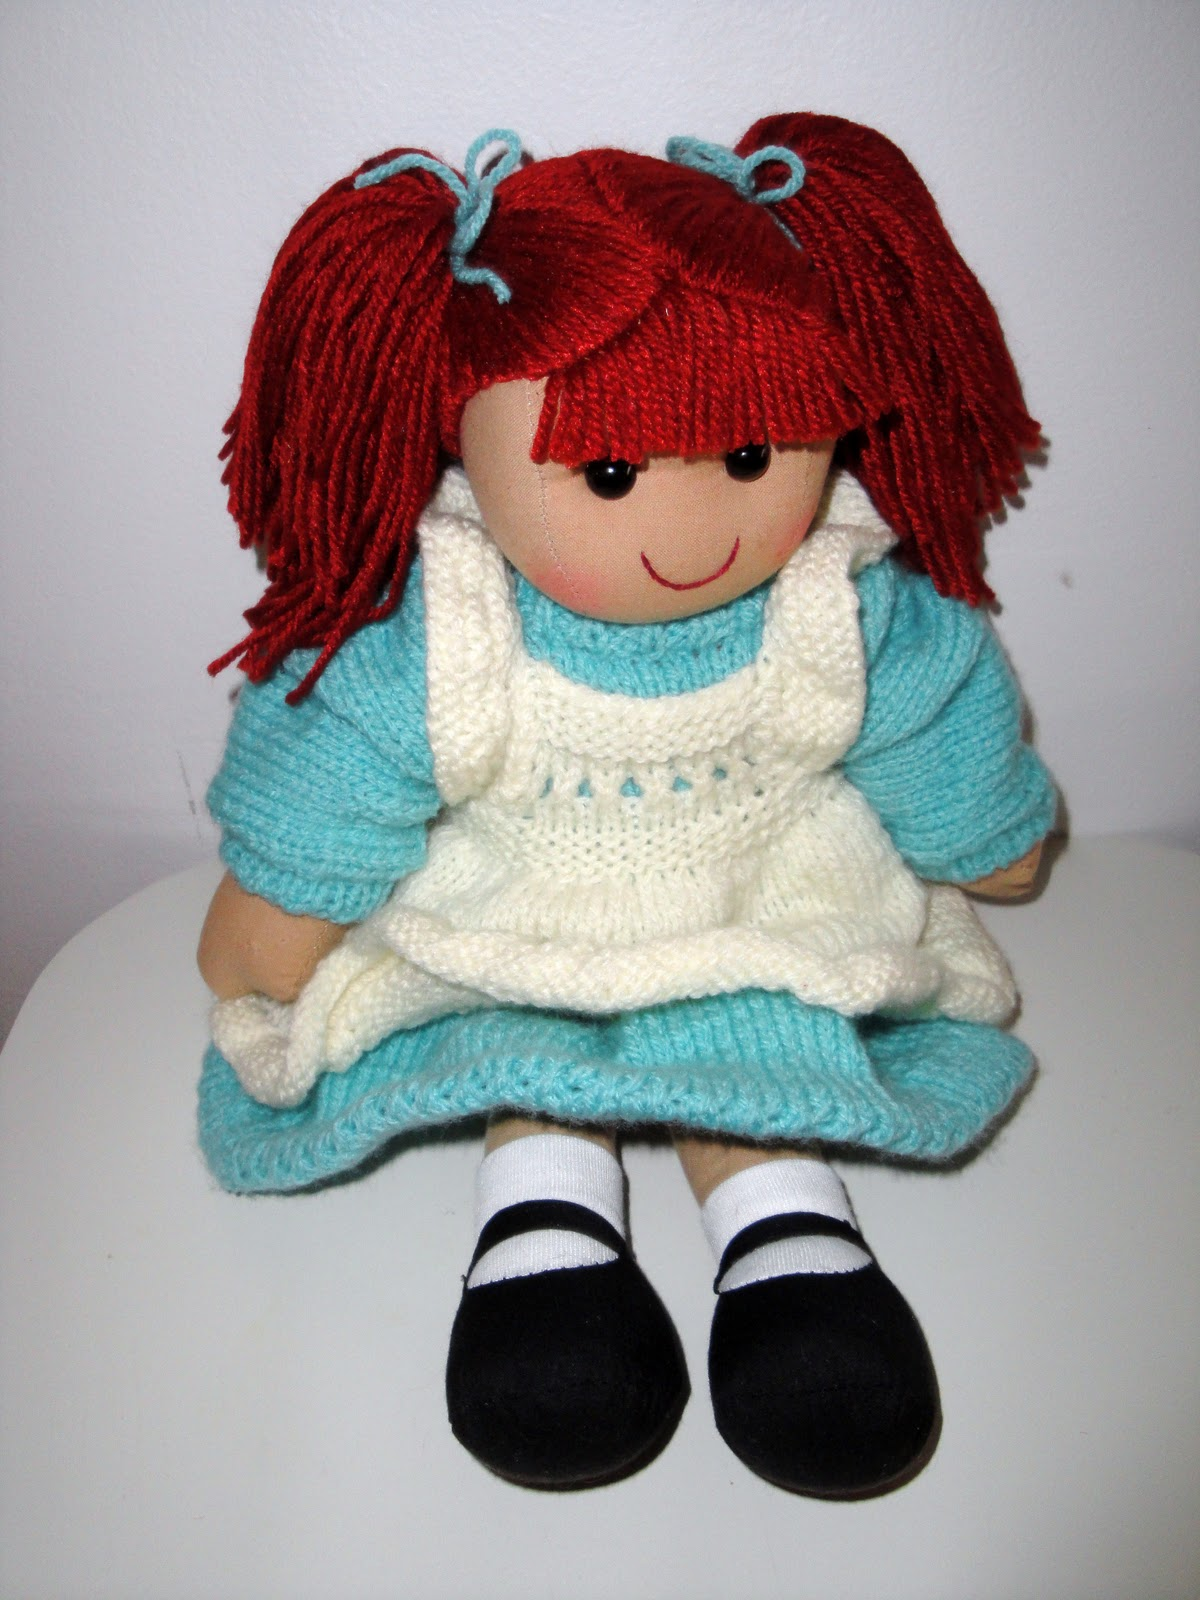 Knitted Rag Doll Patterns Image collections - handicraft ideas home ...